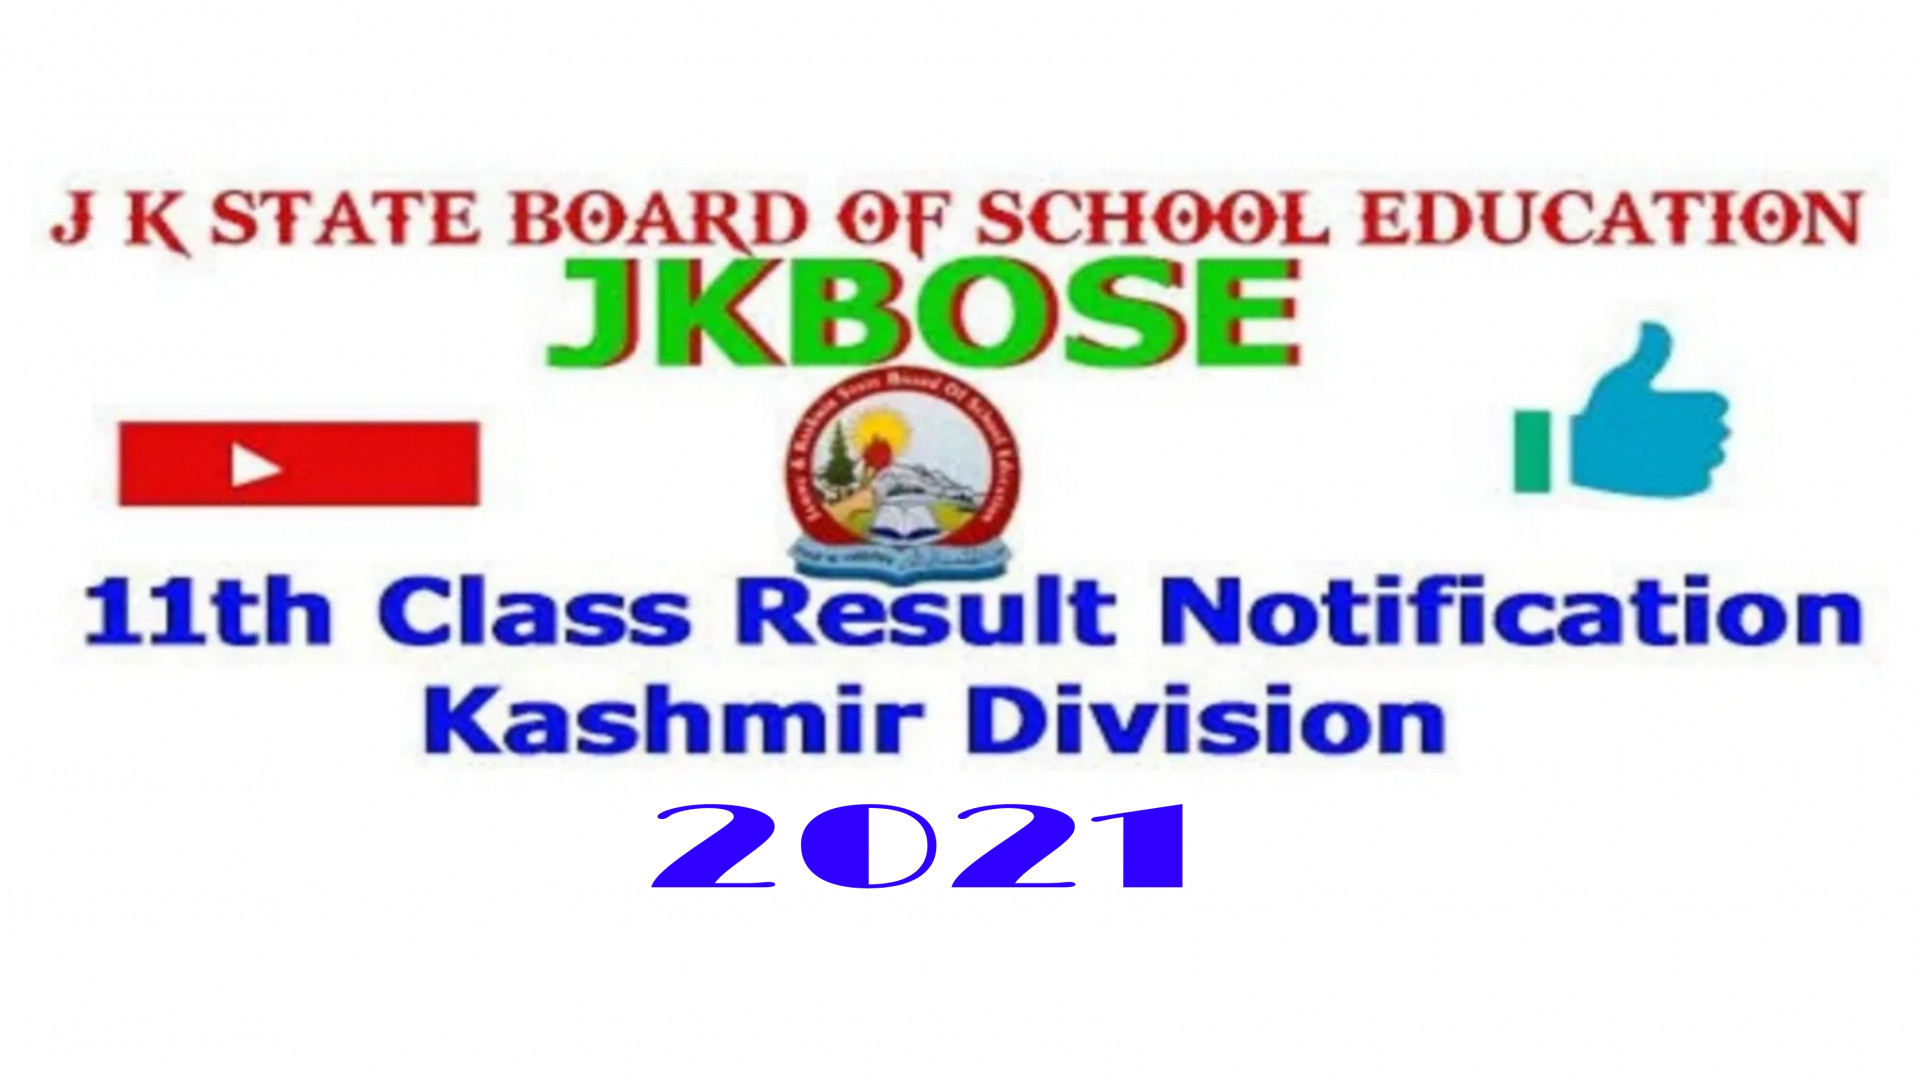 Jkbose 11th class result 2021 Kashmir Division Latest update News Results